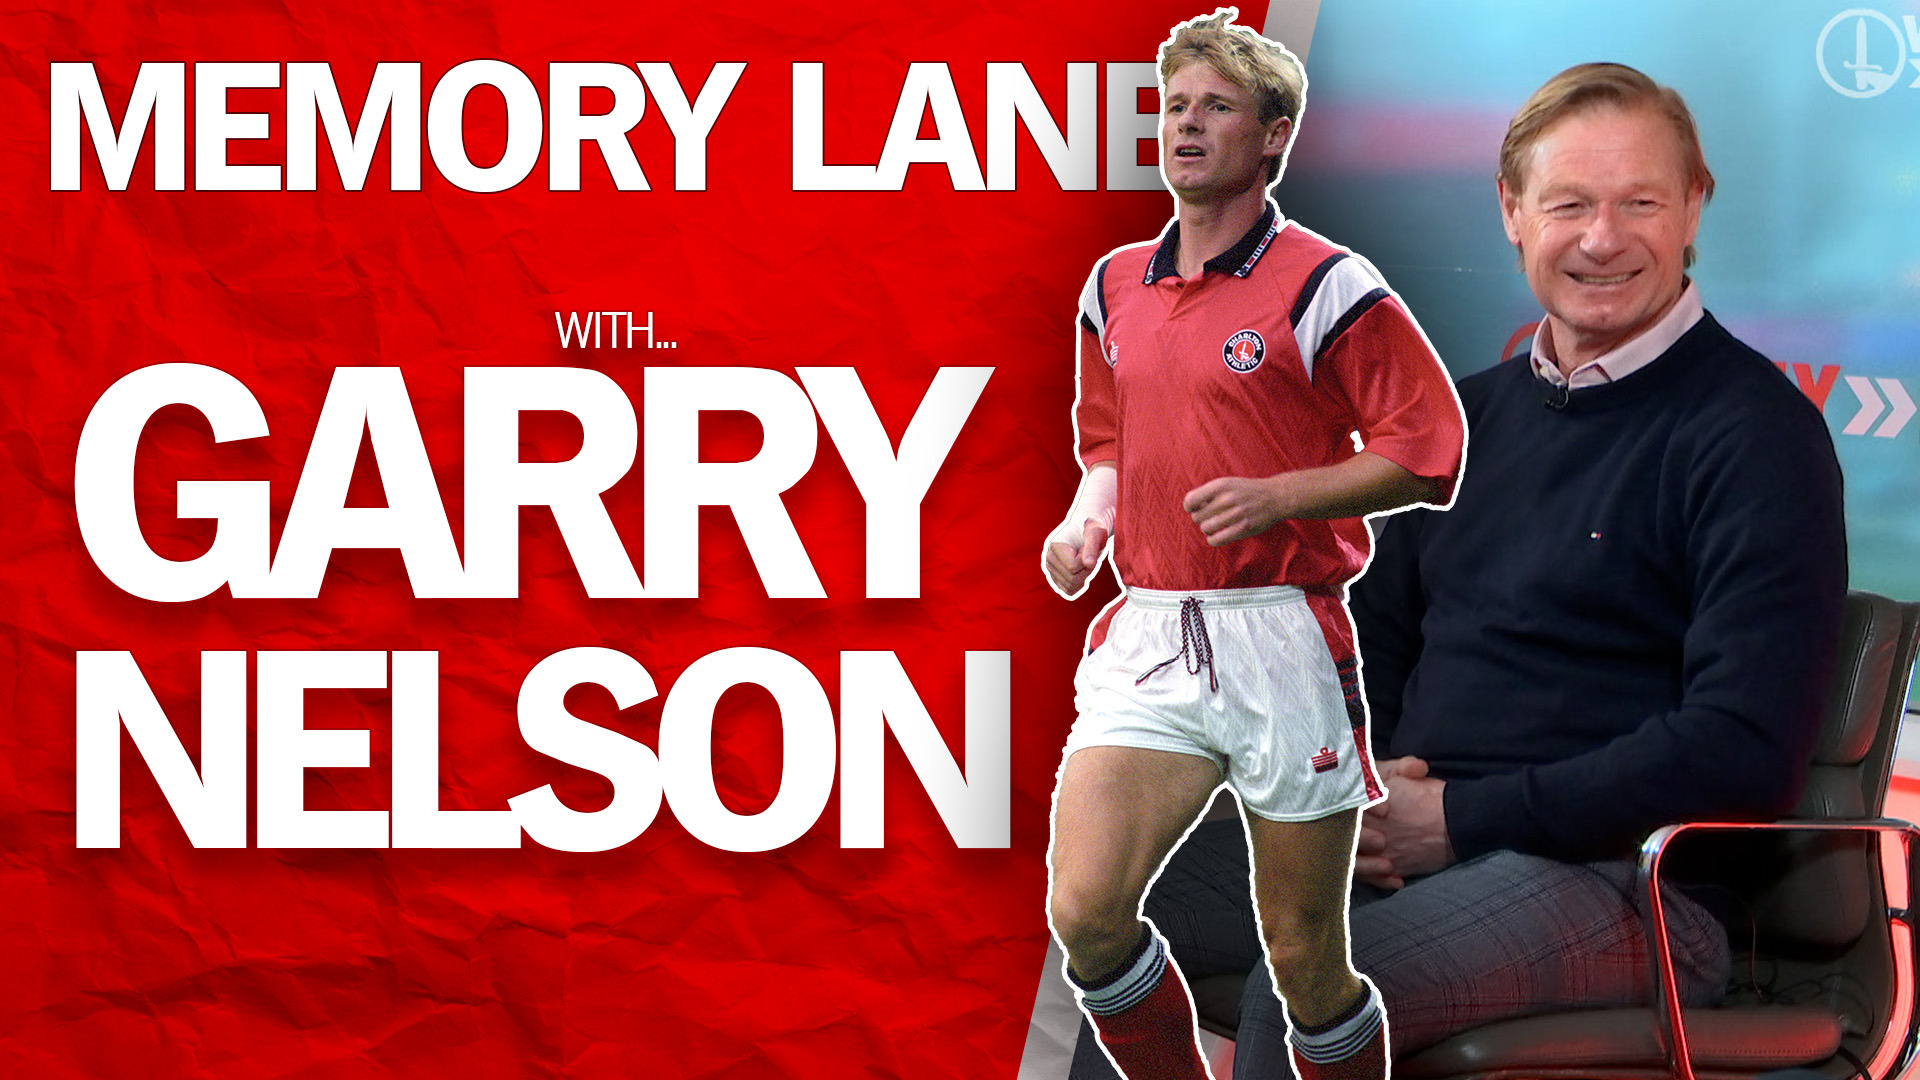 MEMORY LANE | Garry Nelson (March 2021)